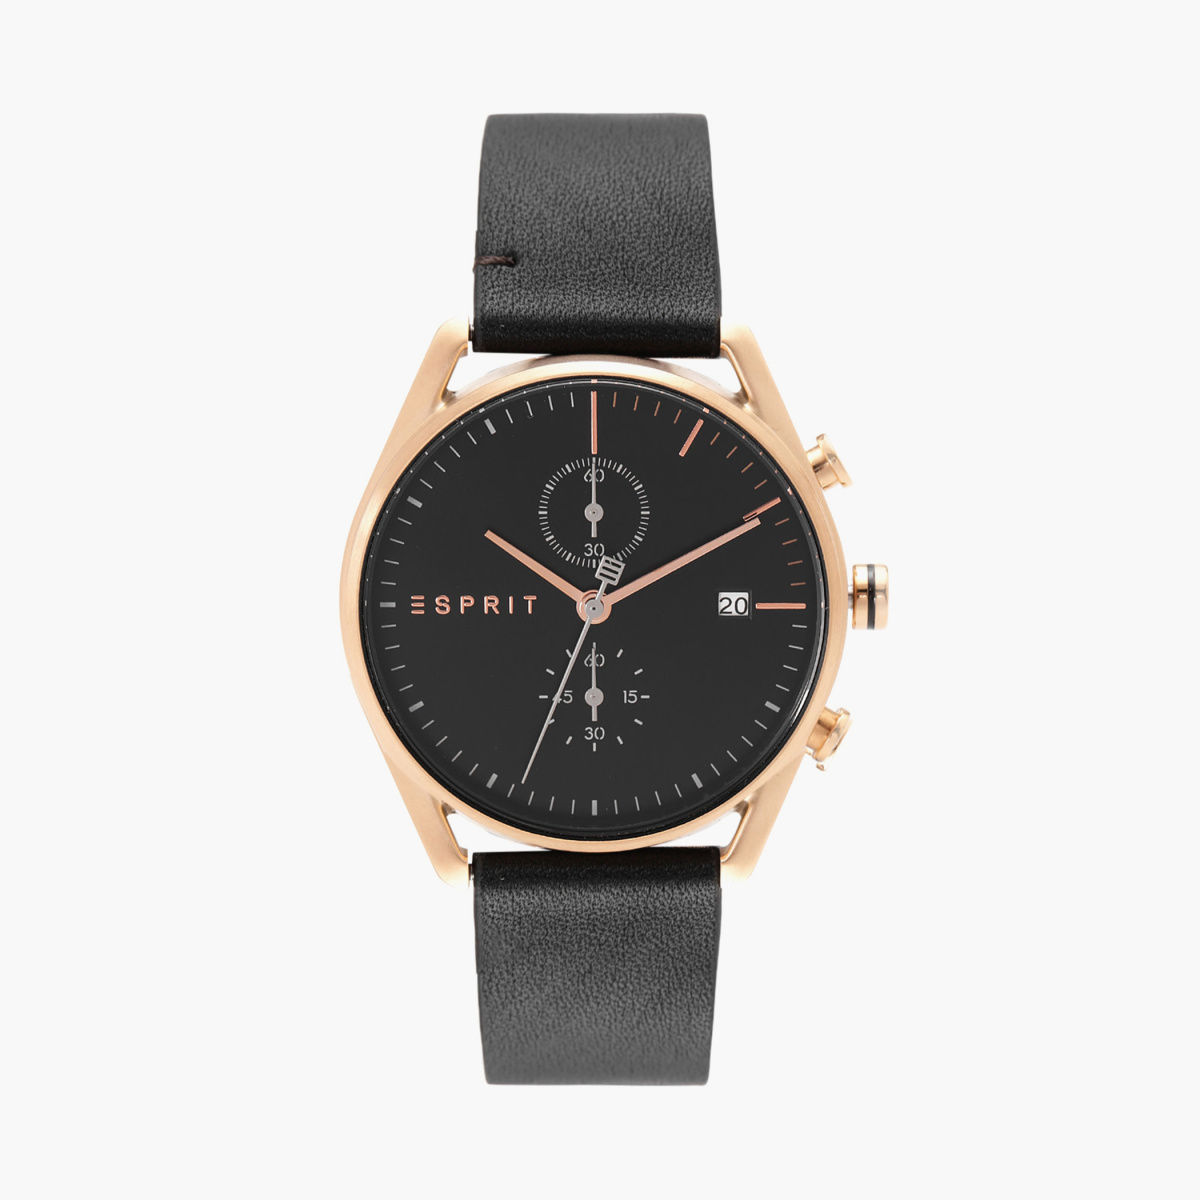 ESPRIT Men Analog Watch with Leather Strap - ES1G098L0045